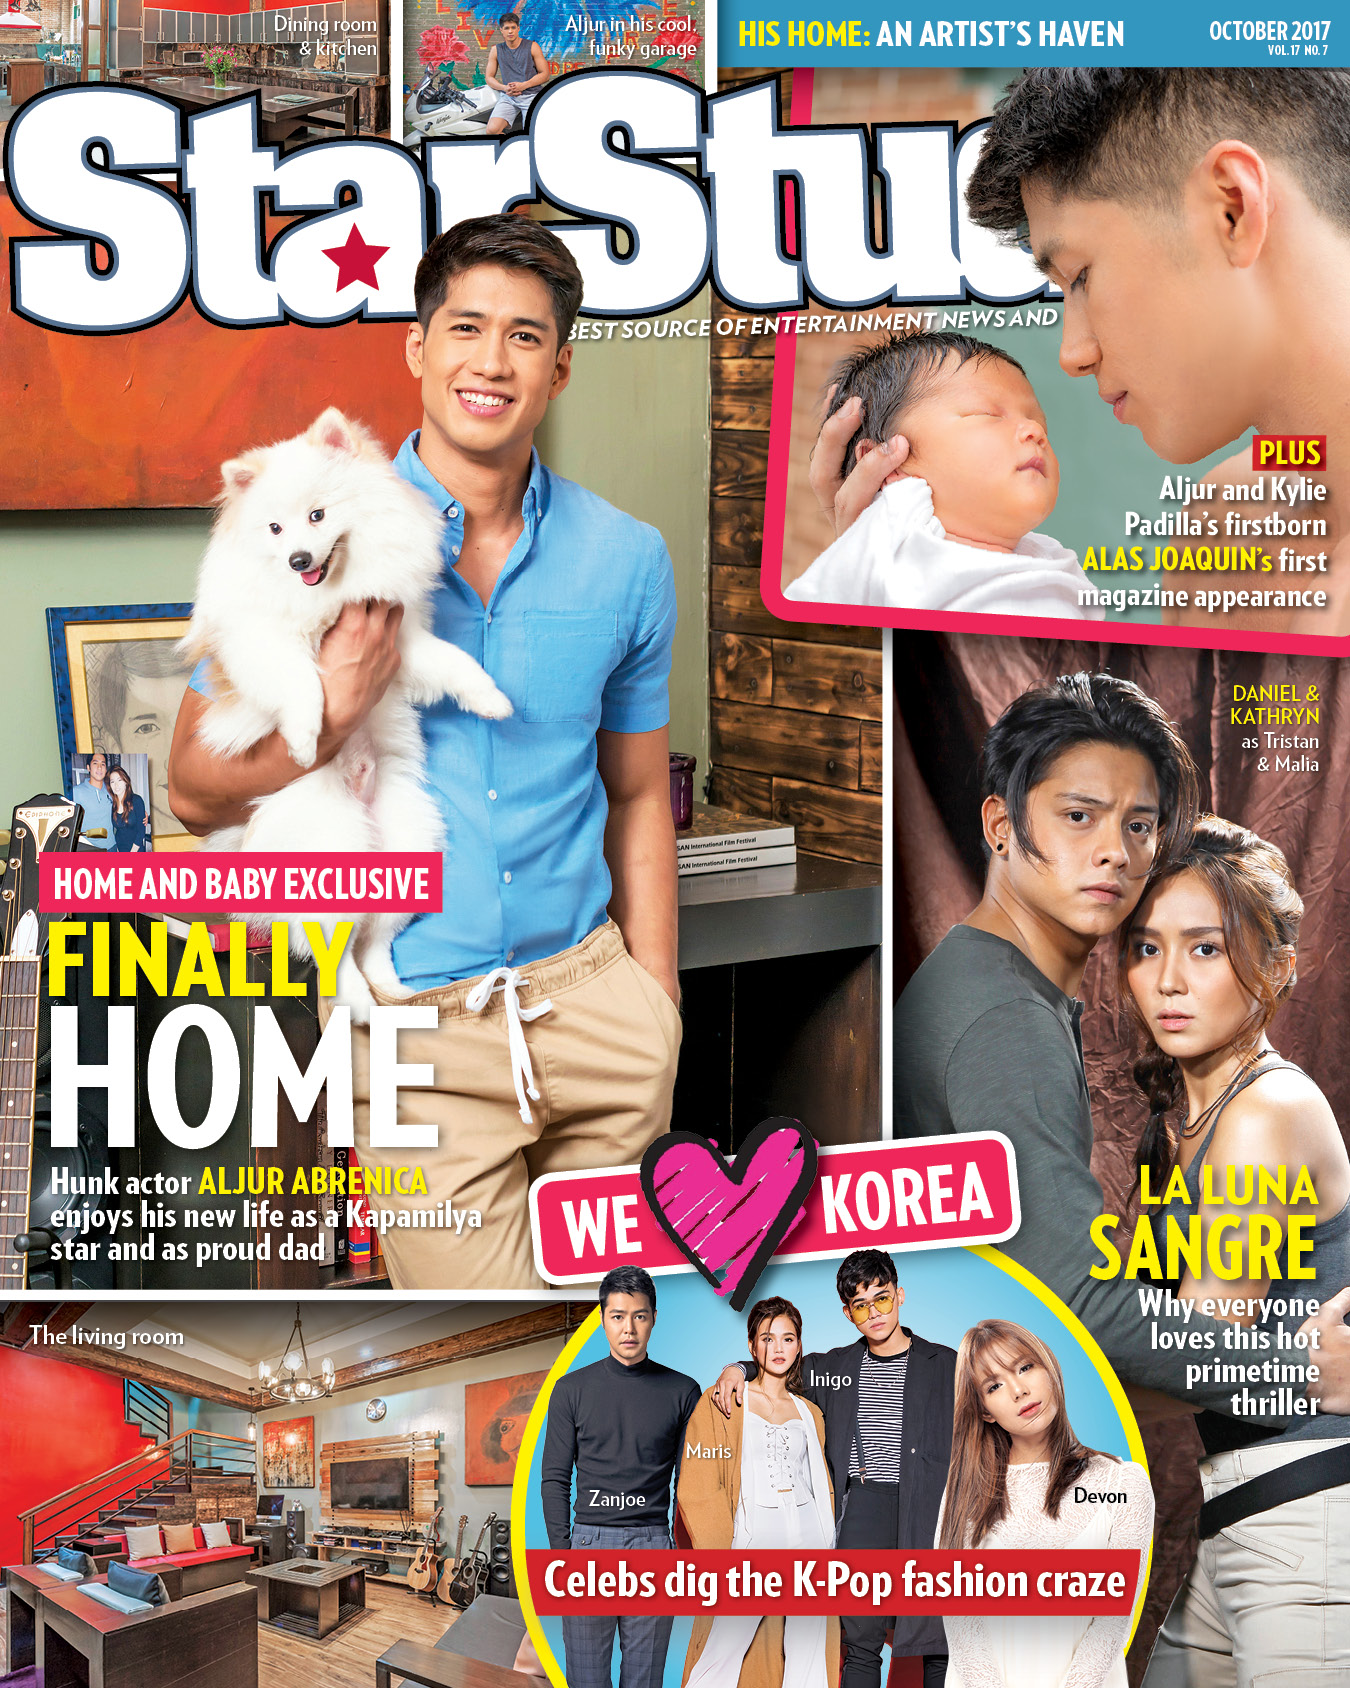 StarStudio visits the home of Aljur Abrenica